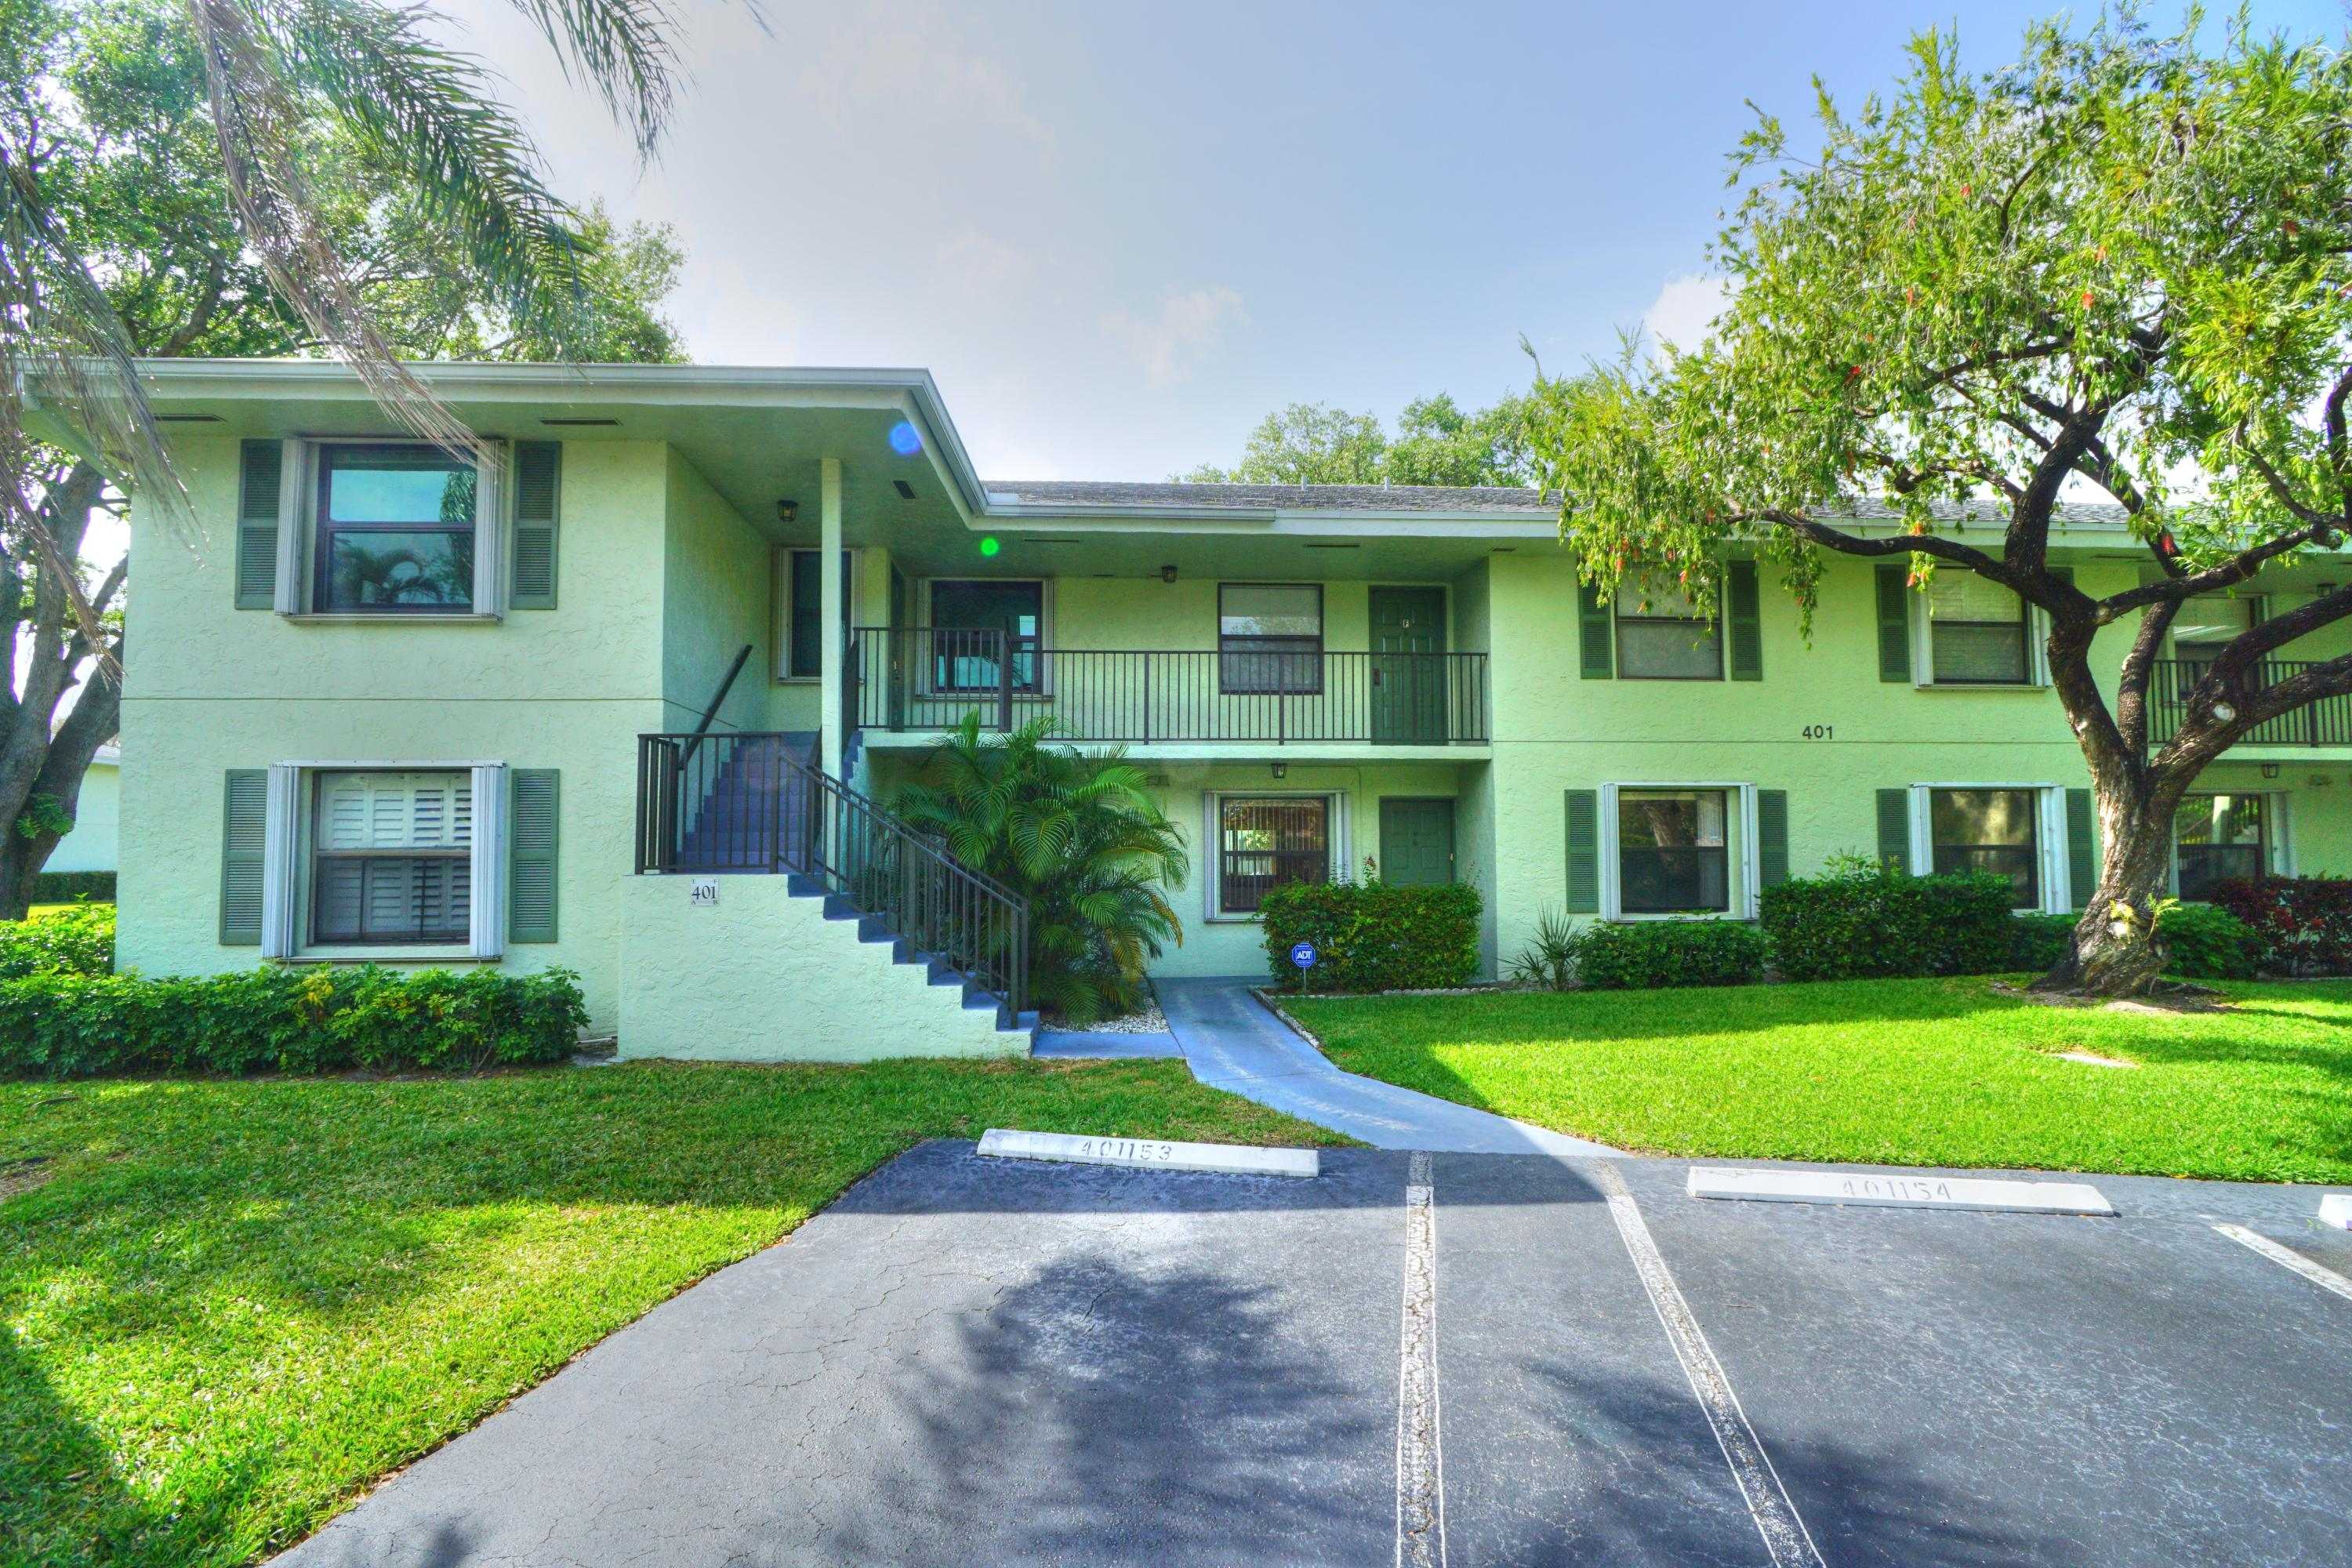 This 2 bedroom, 1st floor condo has water views and is located in the heart of Palm Beach Gardens close to shopping, dining and i-95. Features include tile floors, brand new bathroom vanities, fresh paint, ample storage, washer/dryer in unit, accordion hurricane shutters, assigned parking, a screened in patio & more. Basic cable television, water & ipest control are included in rent. One small pet may be considered with a $250 non-refundable pet fee. Above average credit and income of 3x the monthly rent are required. A virtual 360 degree tour of all rooms can be found here: https://kuula.co/post/79jjP/collection/7lXW5